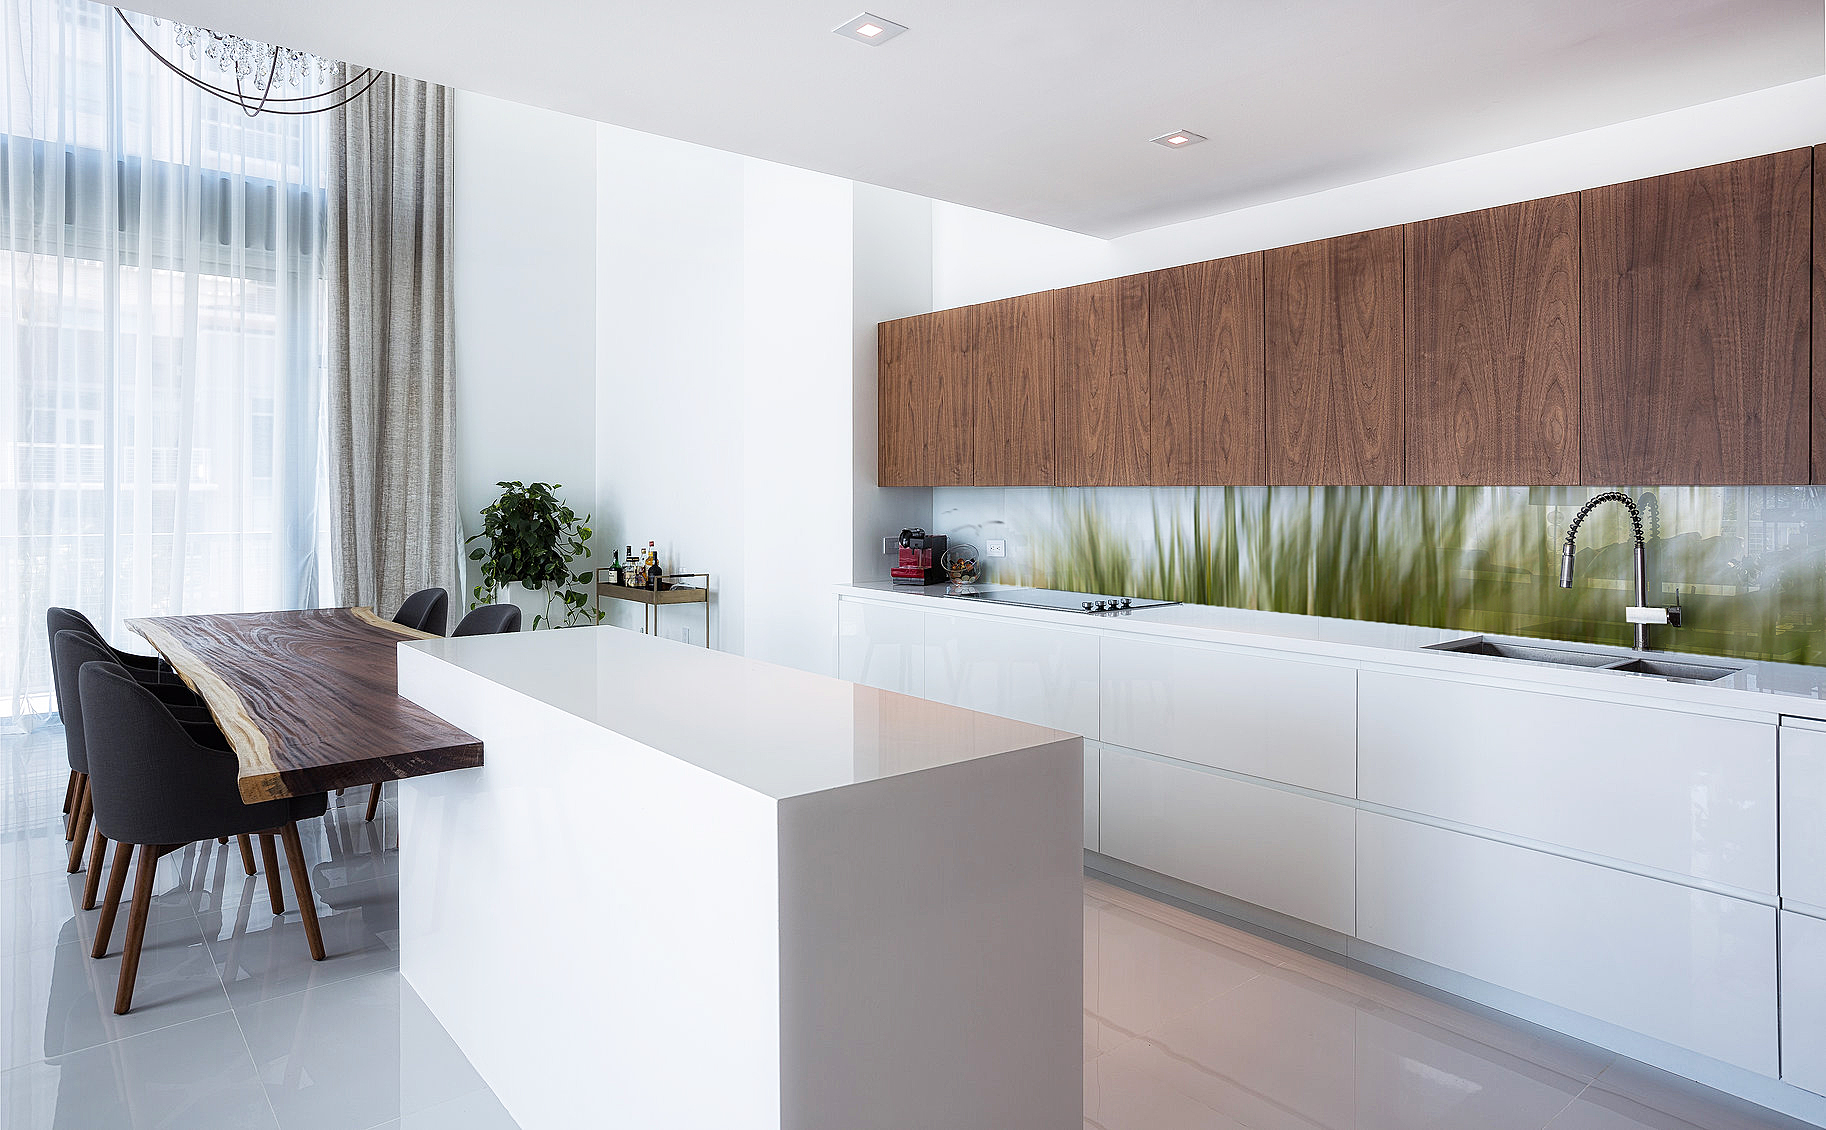 Printed image on glass kitchen splashback  - Melbourne,  Australia - 'Green Grasses'